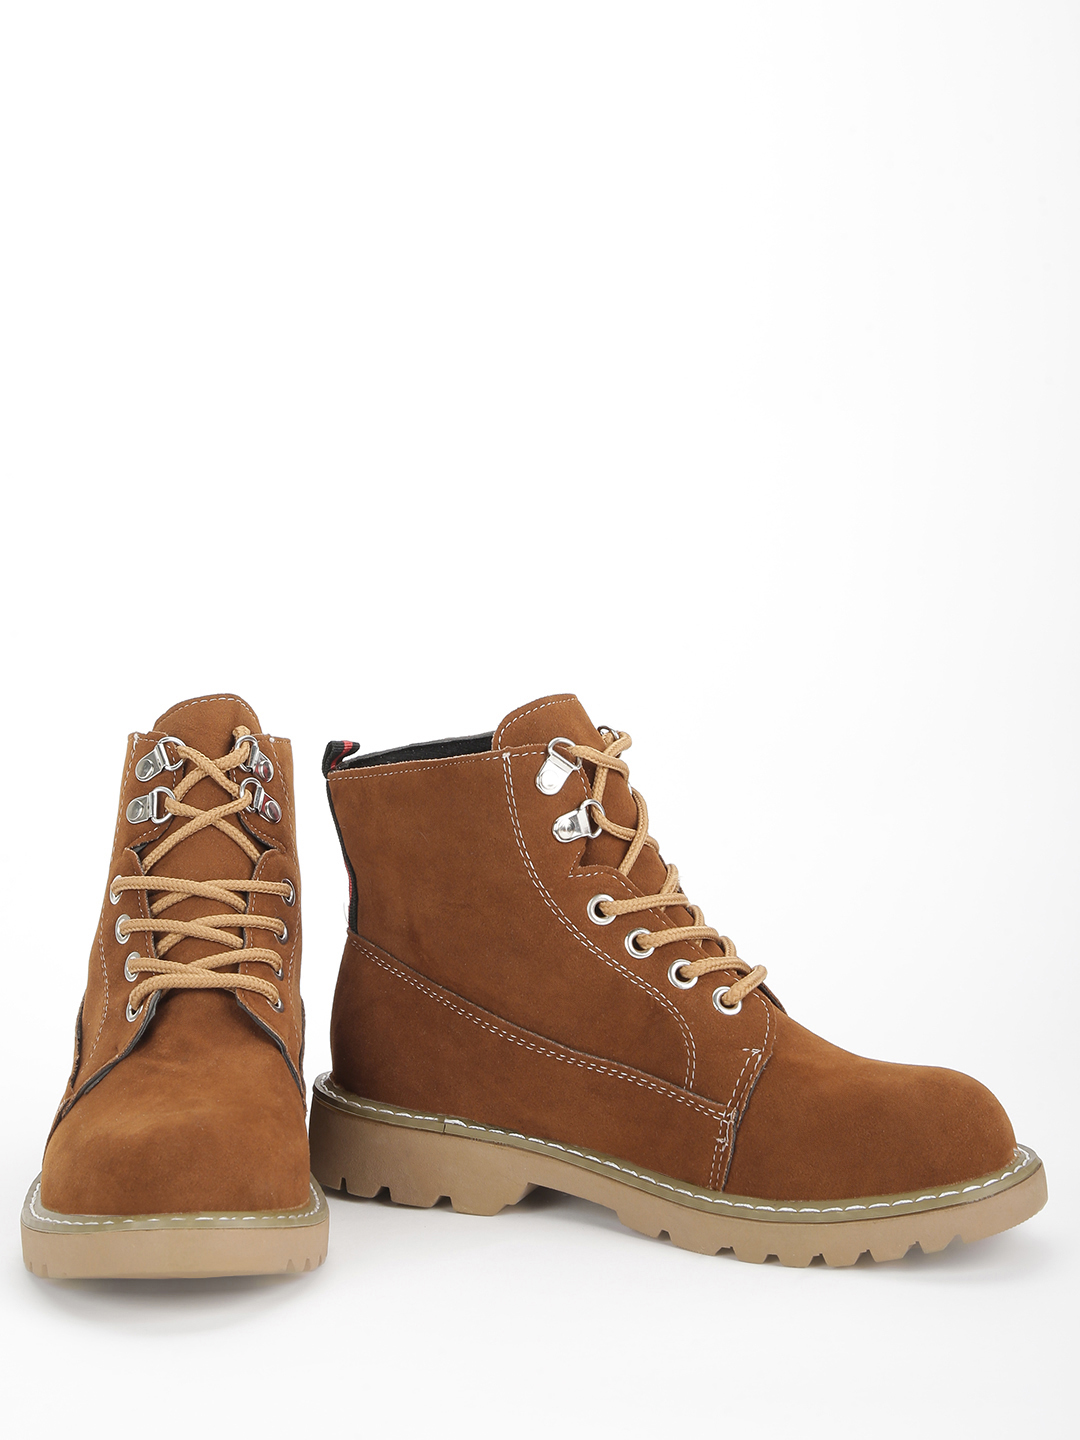 EmmaCloth Brown Suede Ankle Lace-Up Boots 1